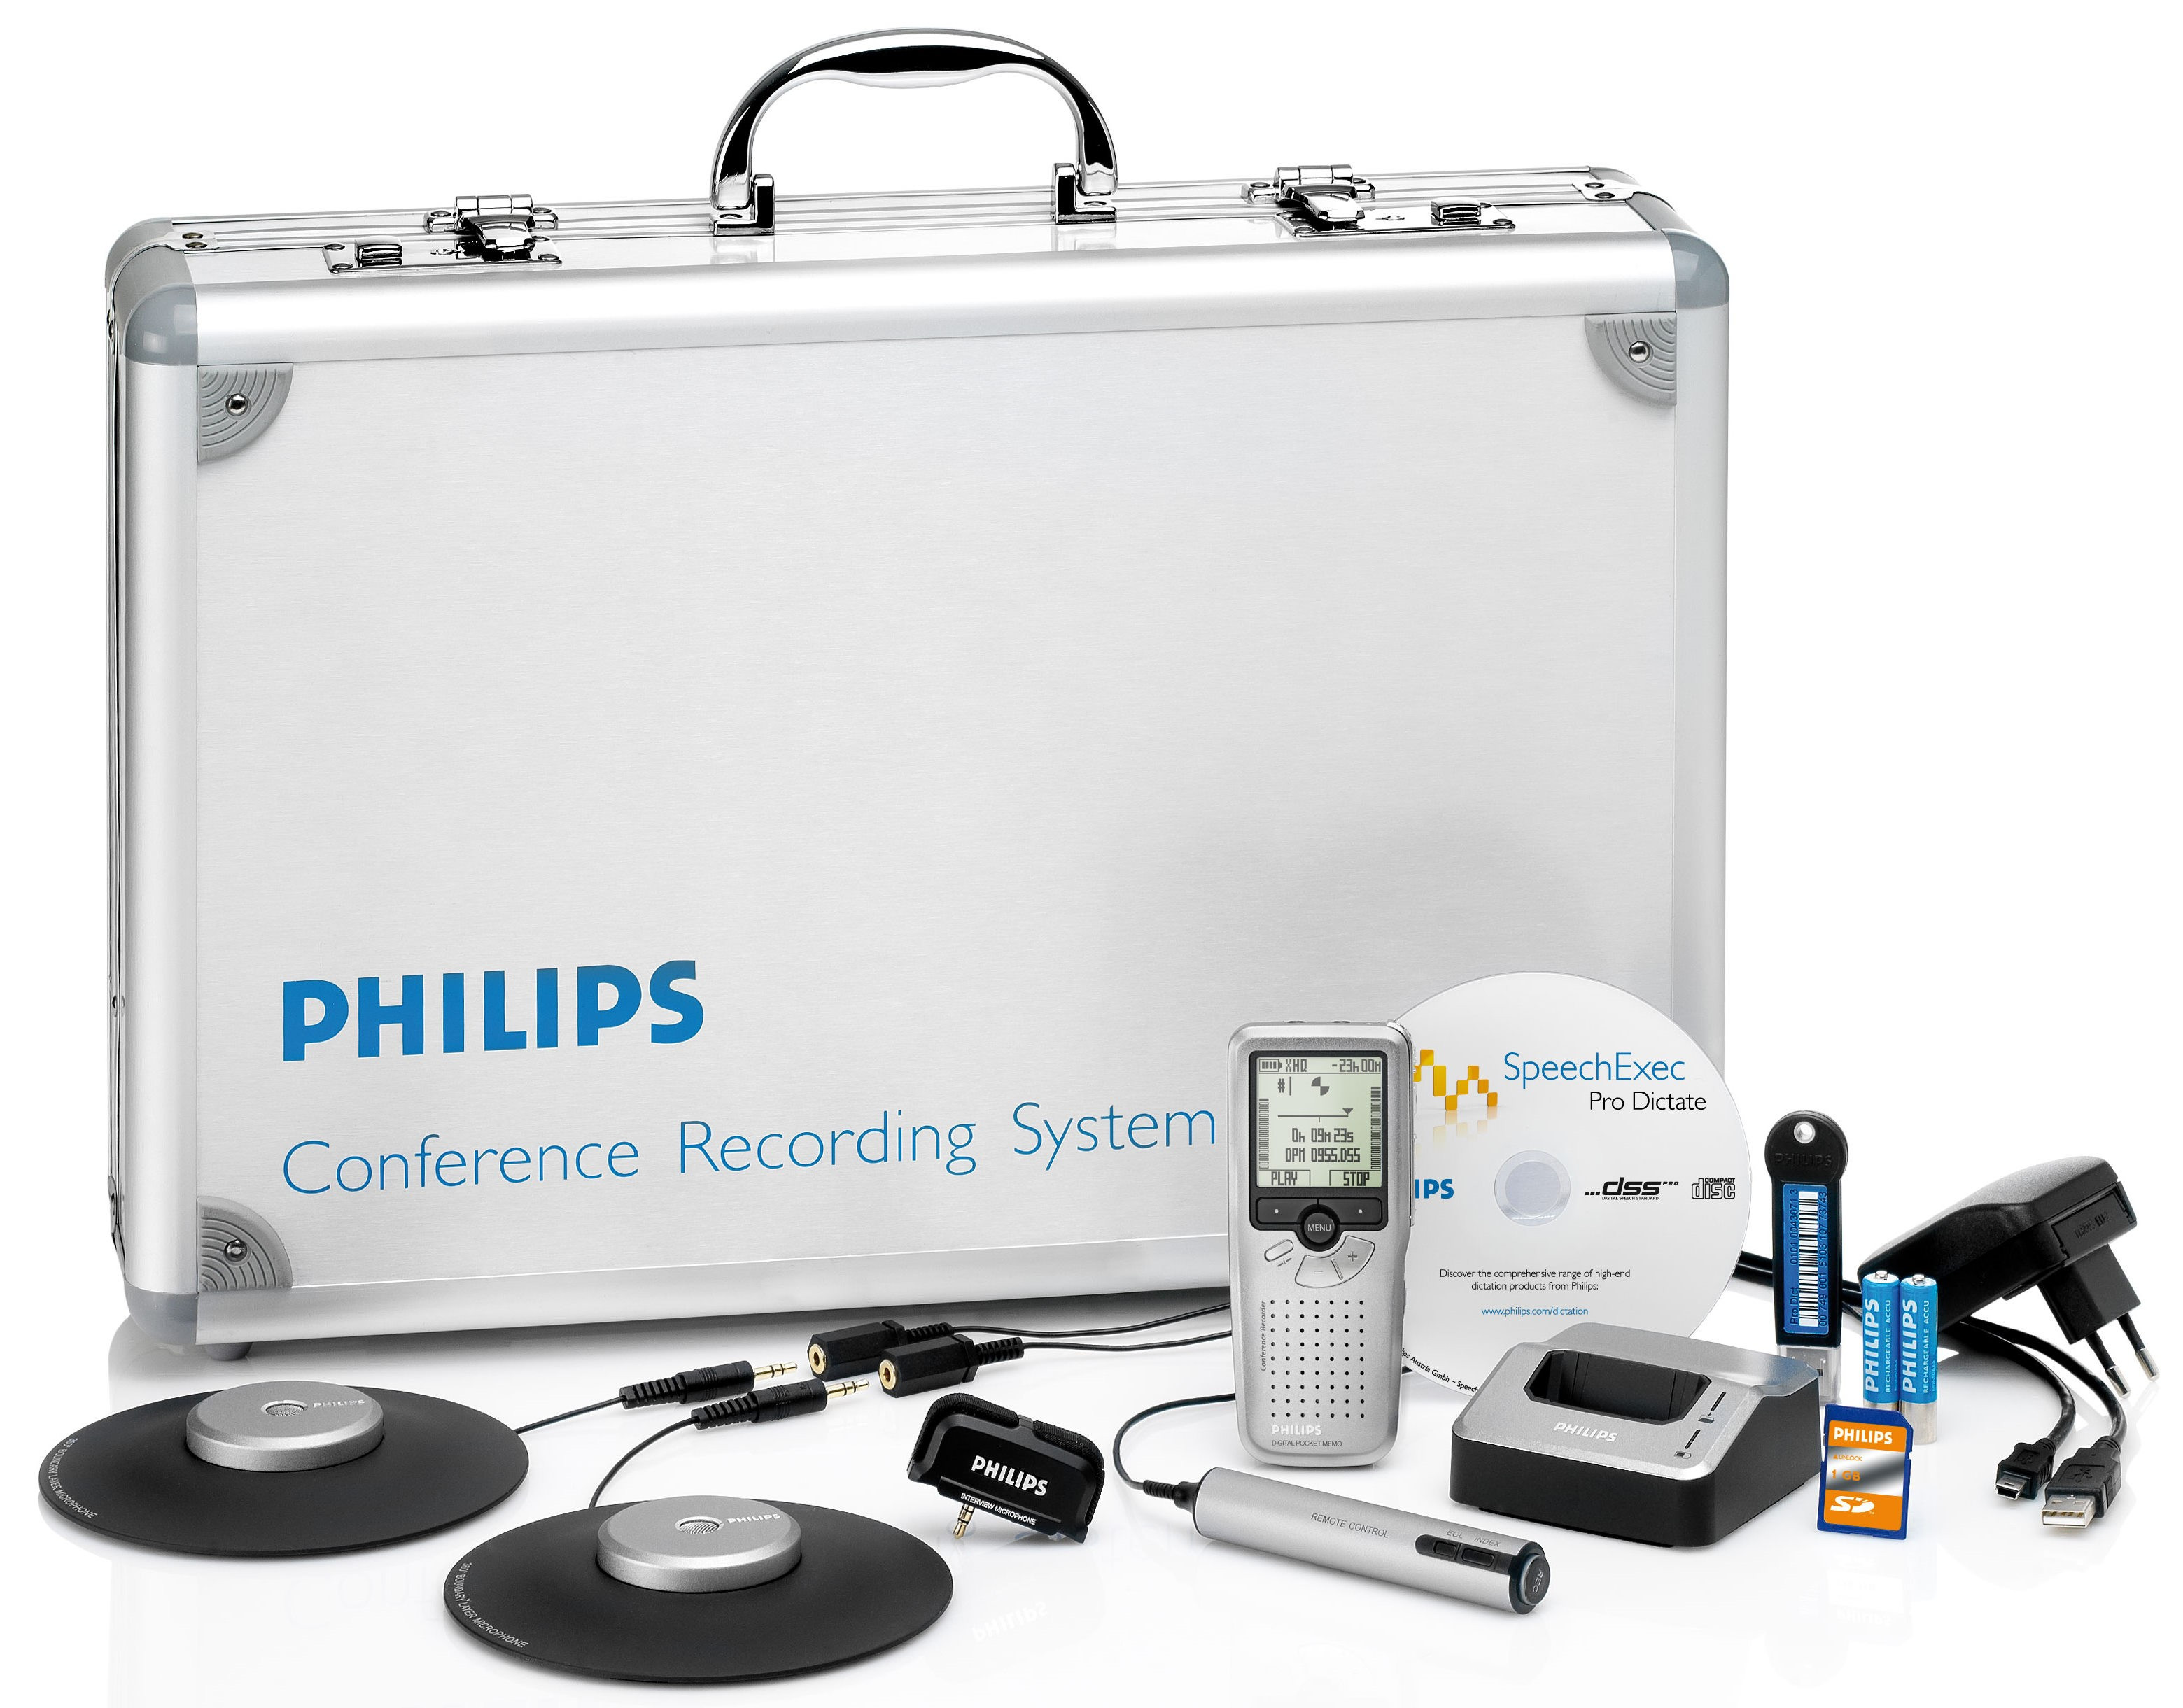 Philips LFH955 Konference optagesystem